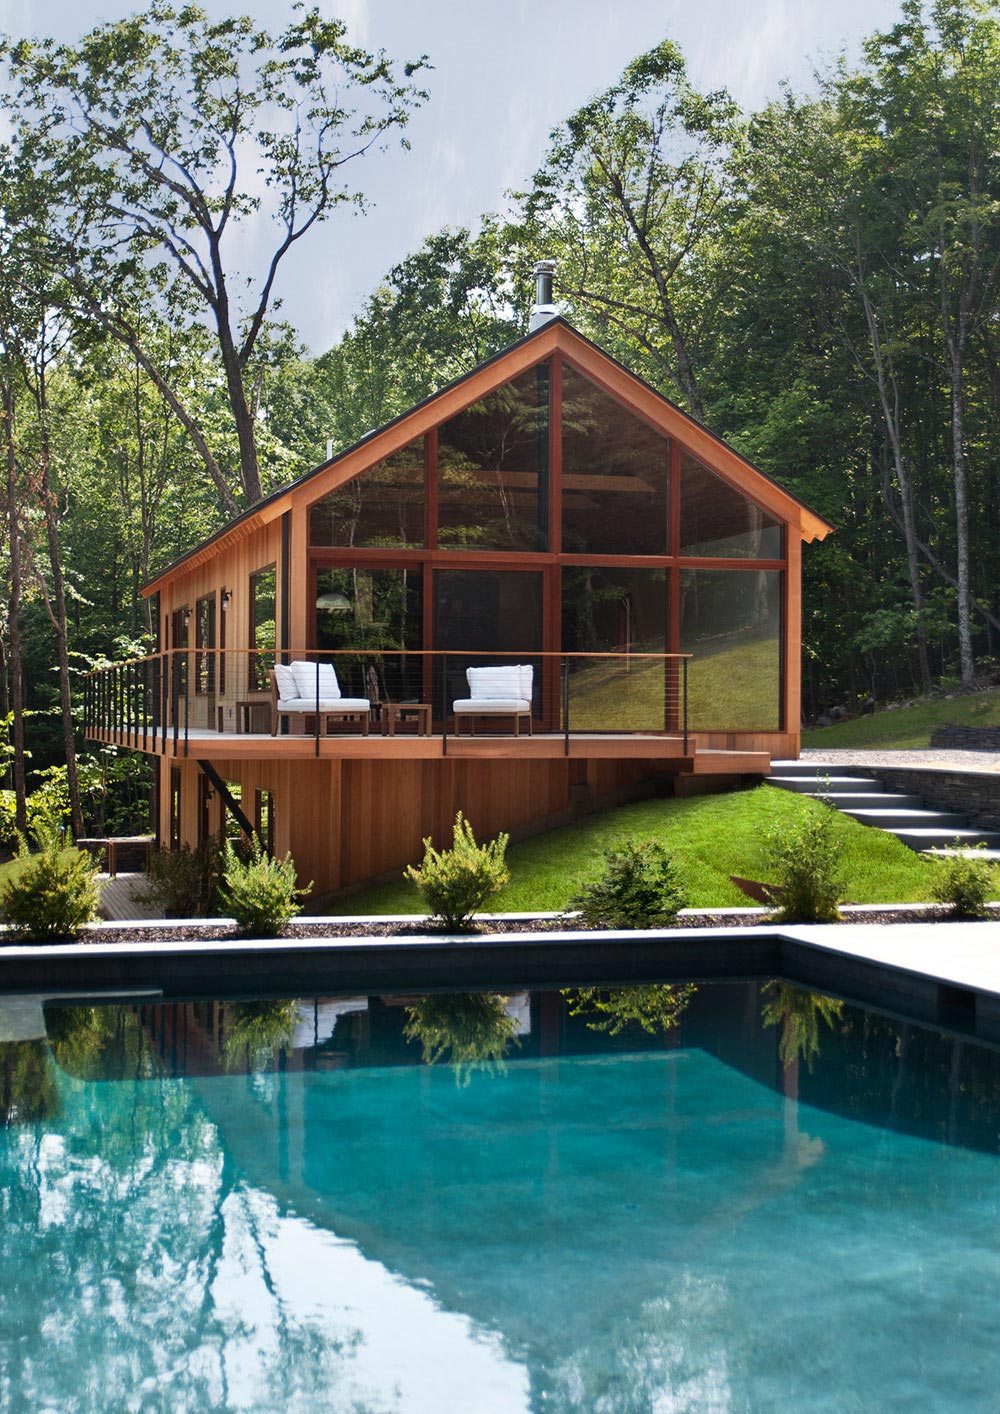 Outdoor Pool, Balcony, Wood and Glass House in Kerhonkson